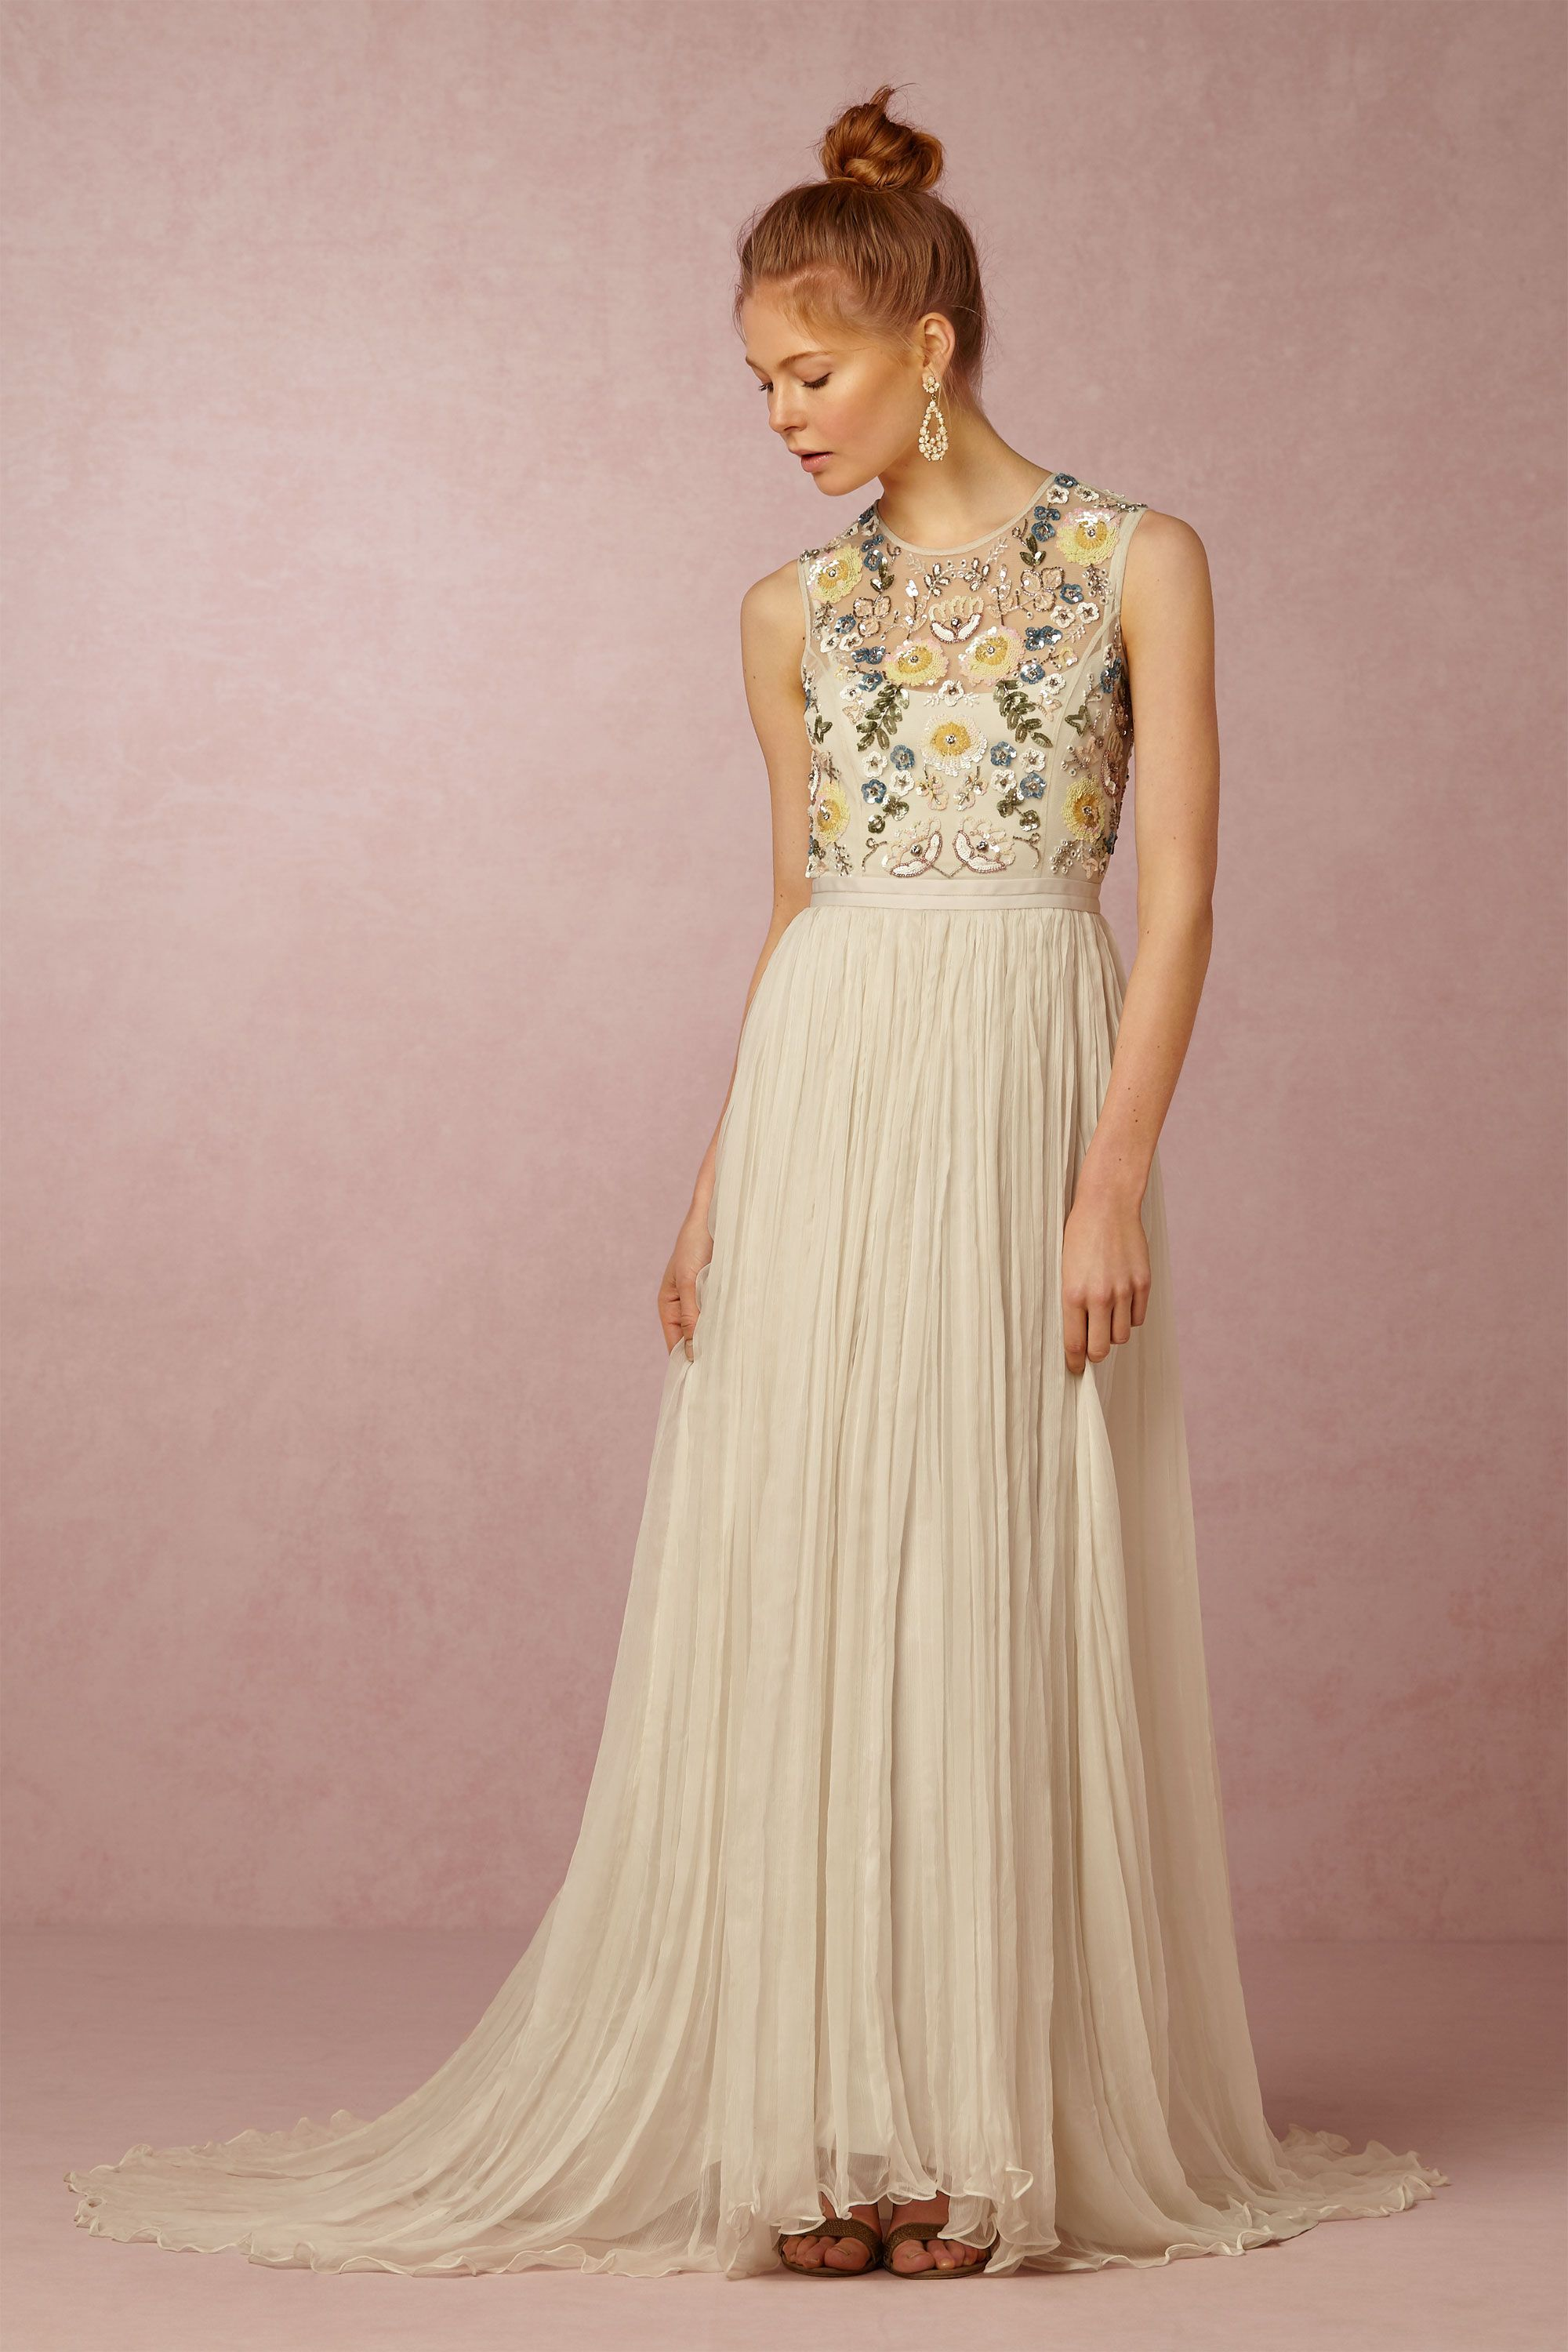 9d39b94f17eb embellished tulle wedding dress with soft color | Paulette Dress by Needle  & Thread for BHLDN